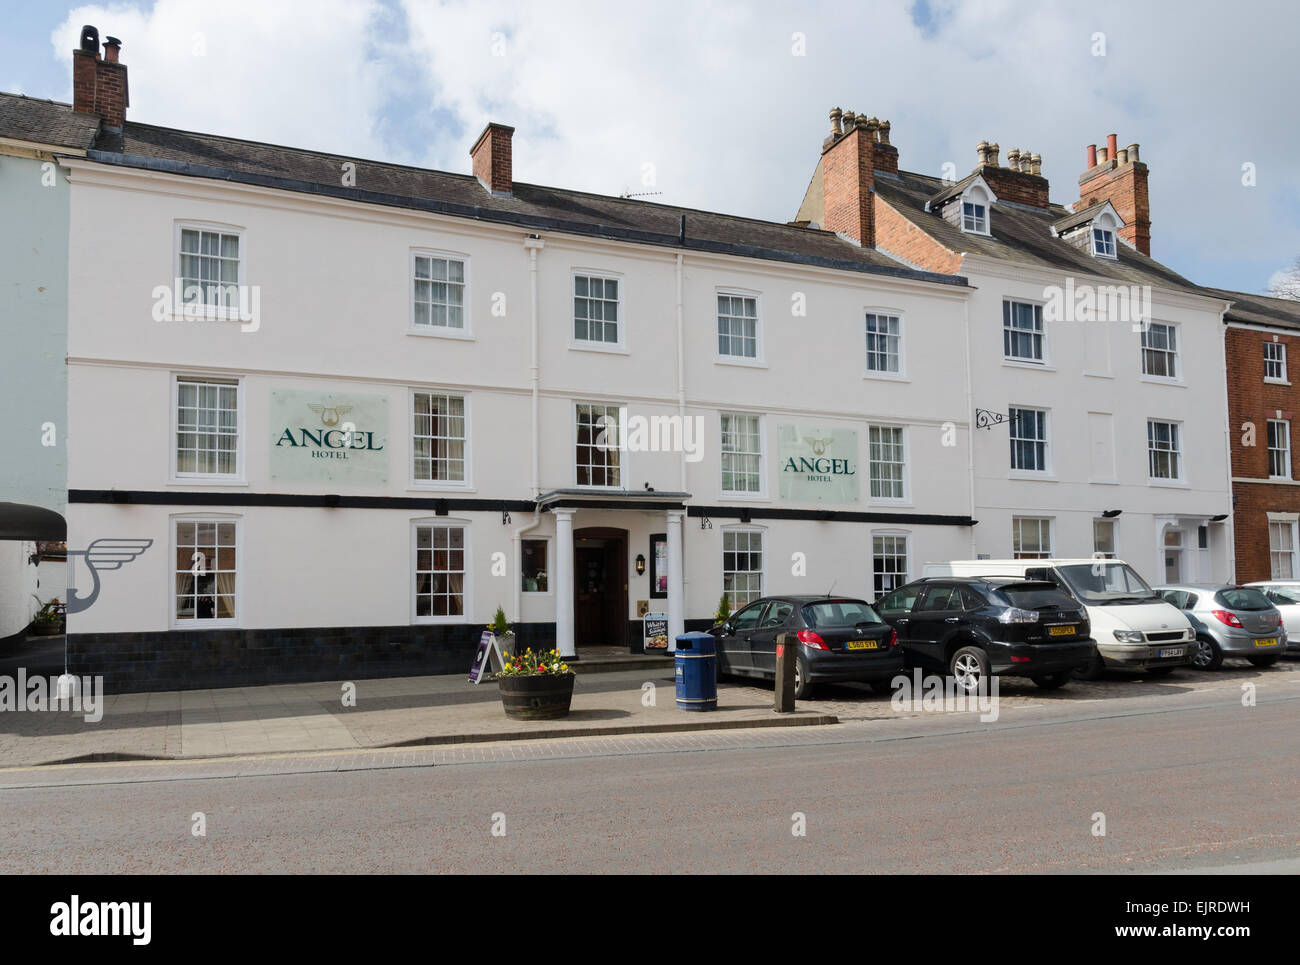 The Angel Hotel in the Leicestershire town of Market Harborough - Stock Image